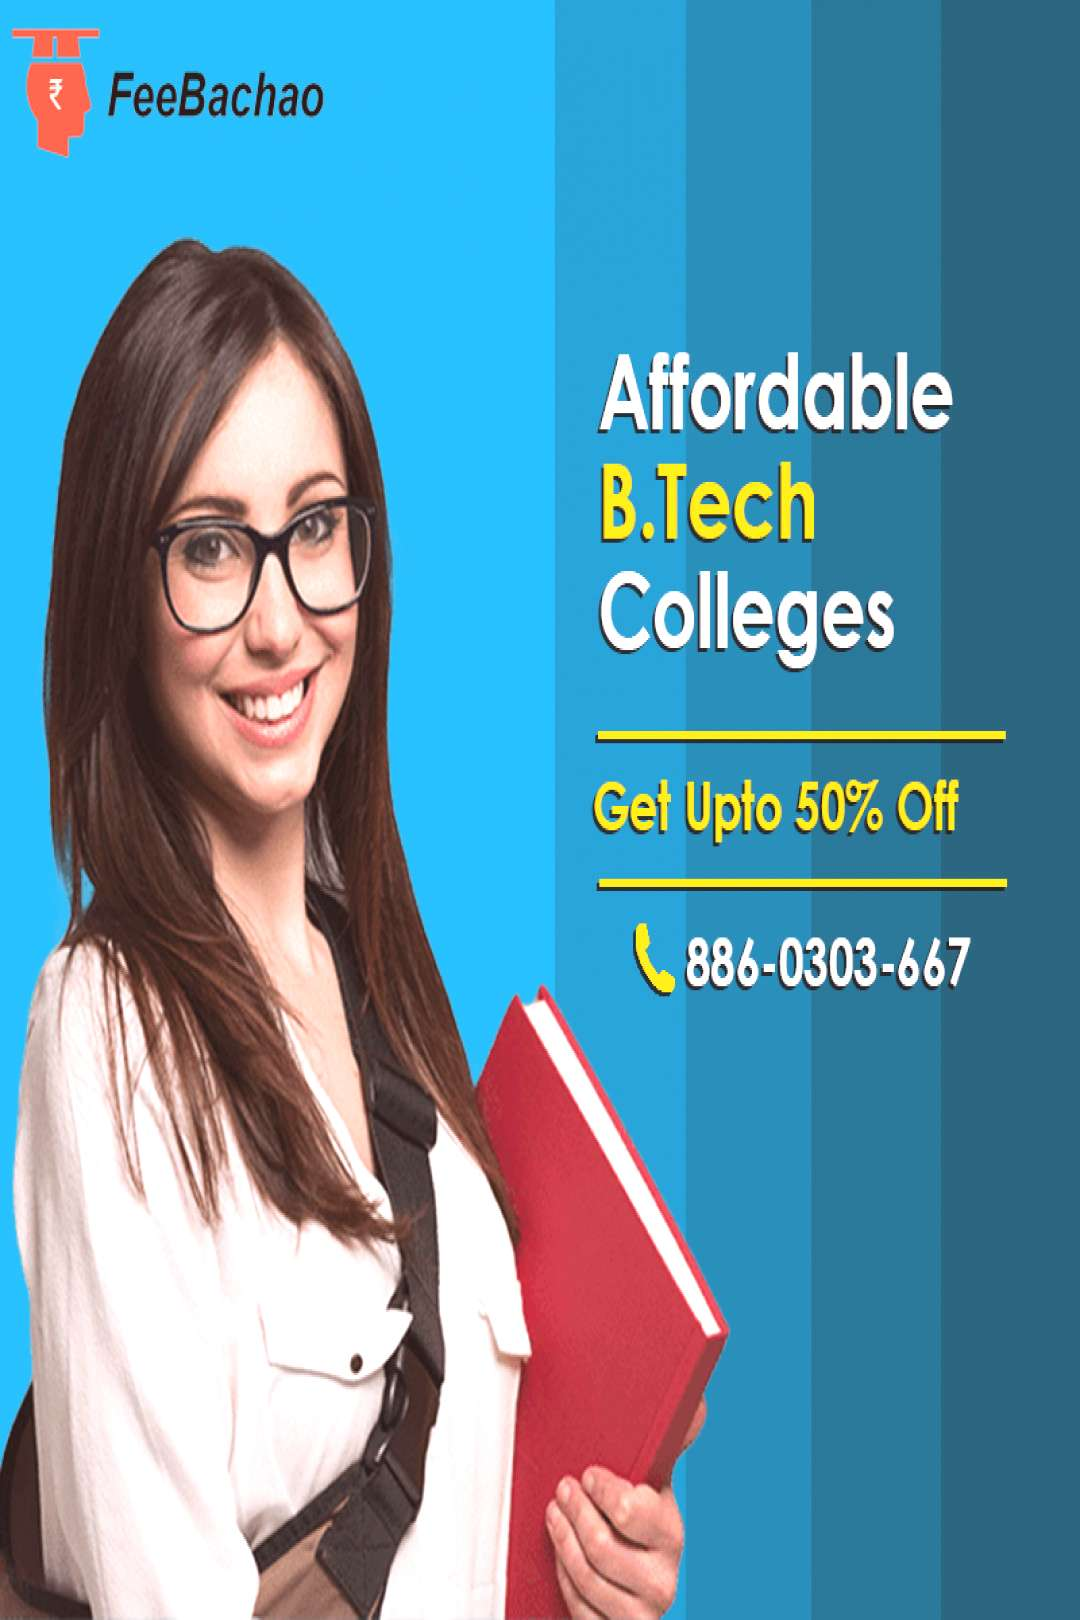 B.Tech A place for and choose the right option. Join our Free Career session and know your dream c